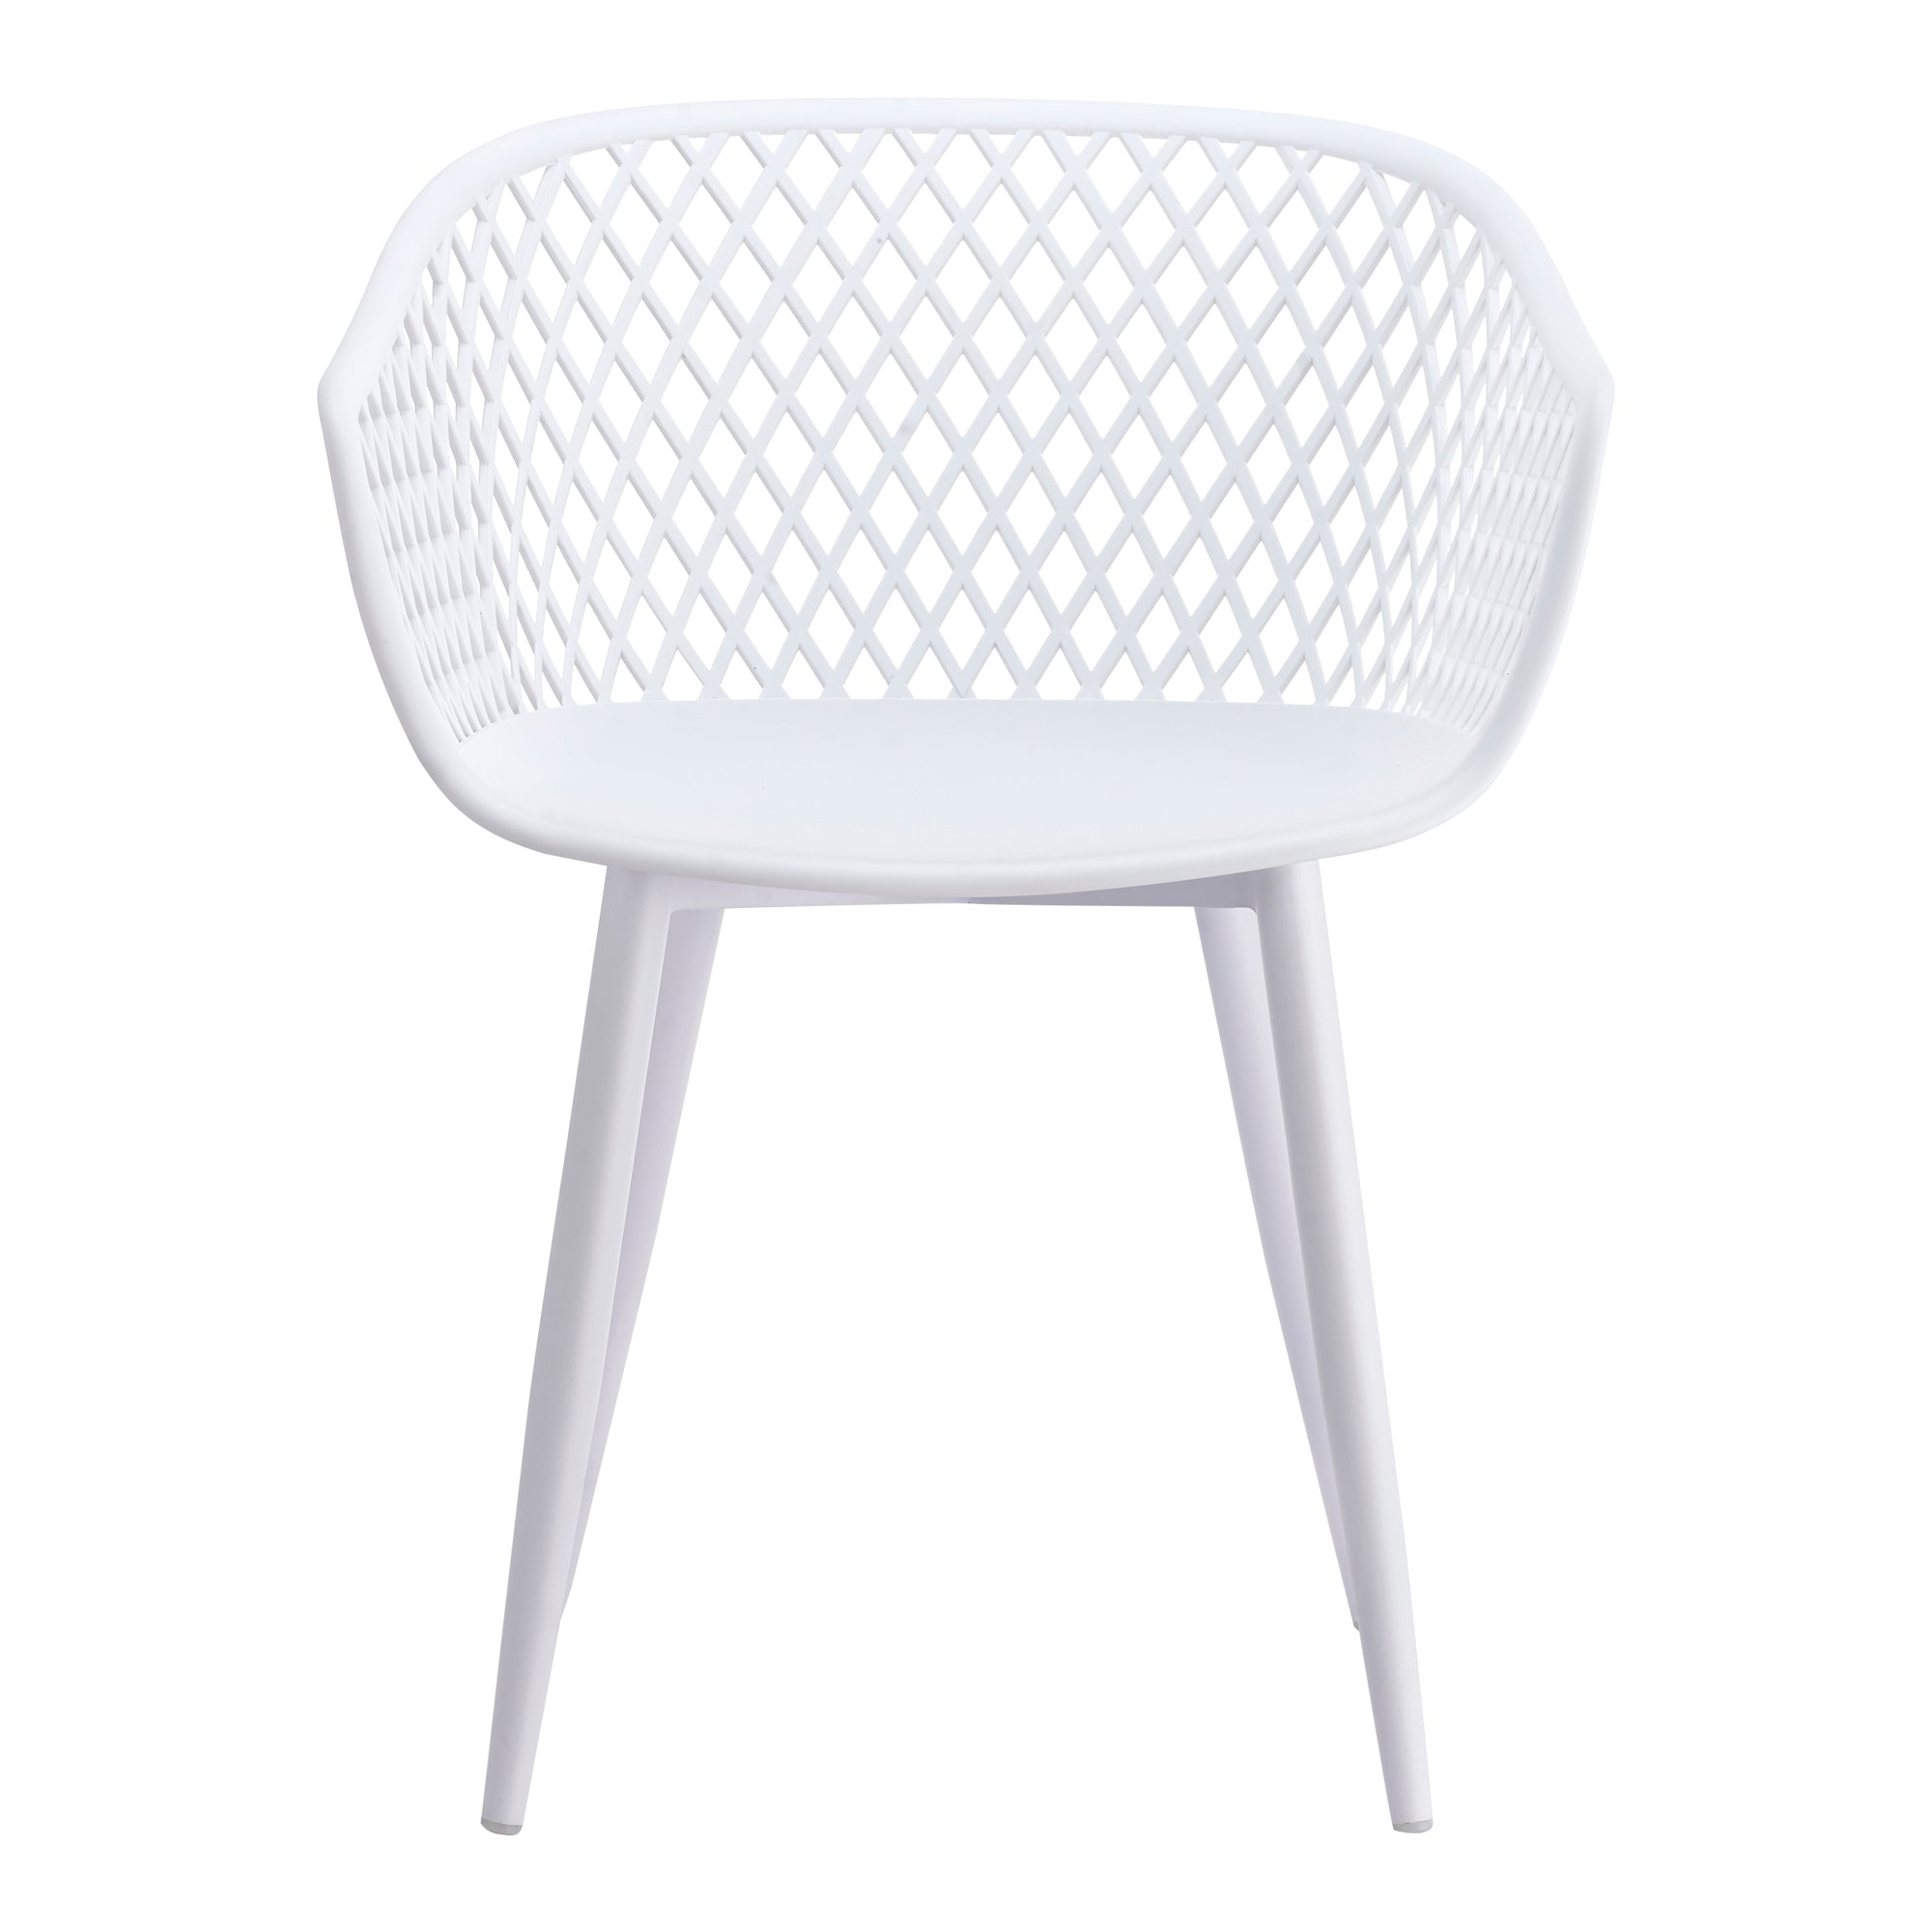 Piazza outdoor chair, white - Tops-Dress